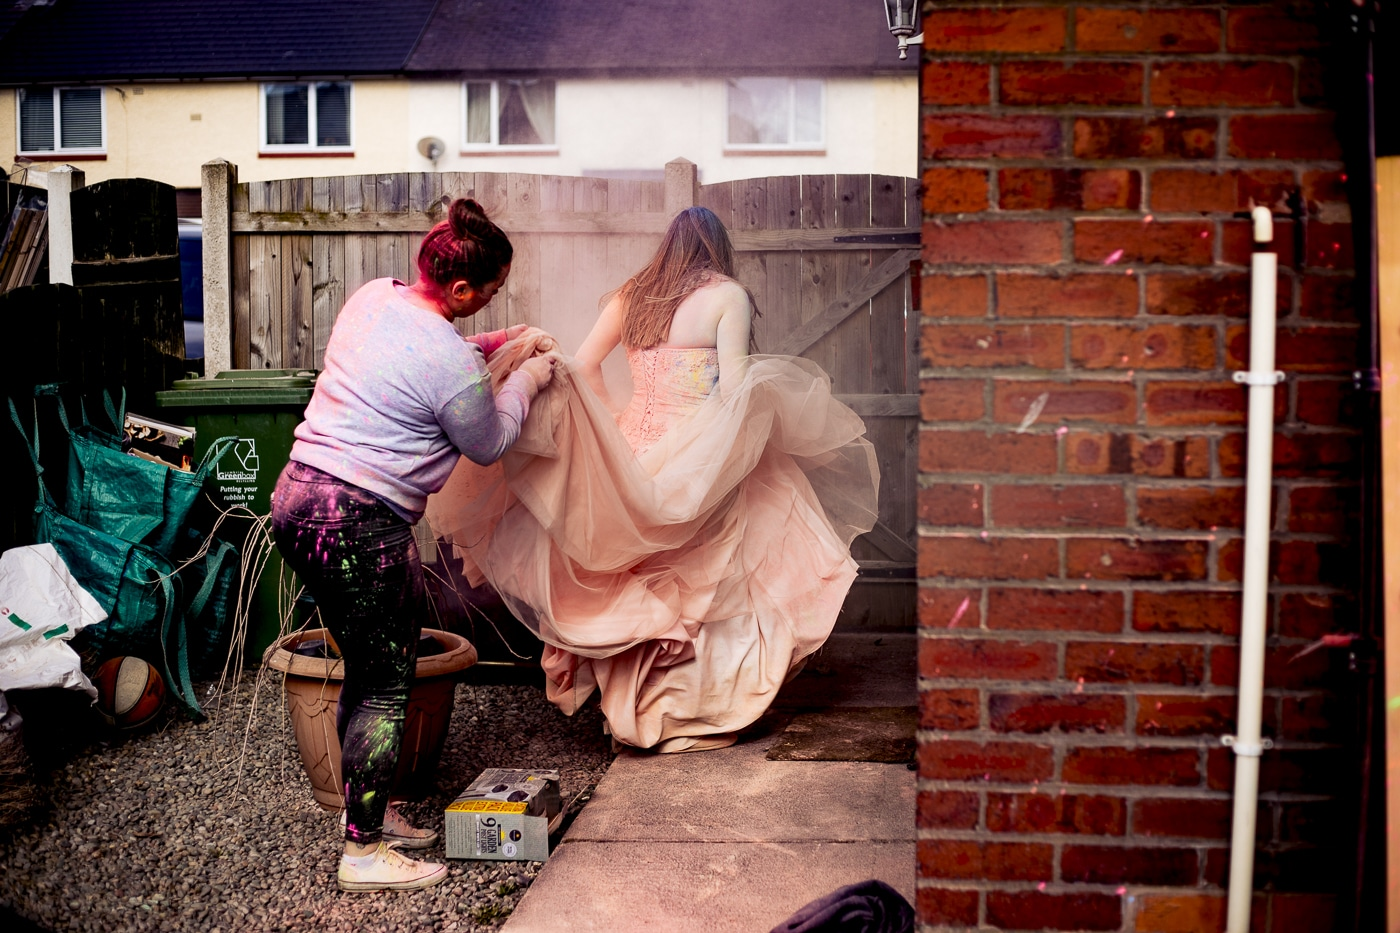 trying to clean the trash the dress paint